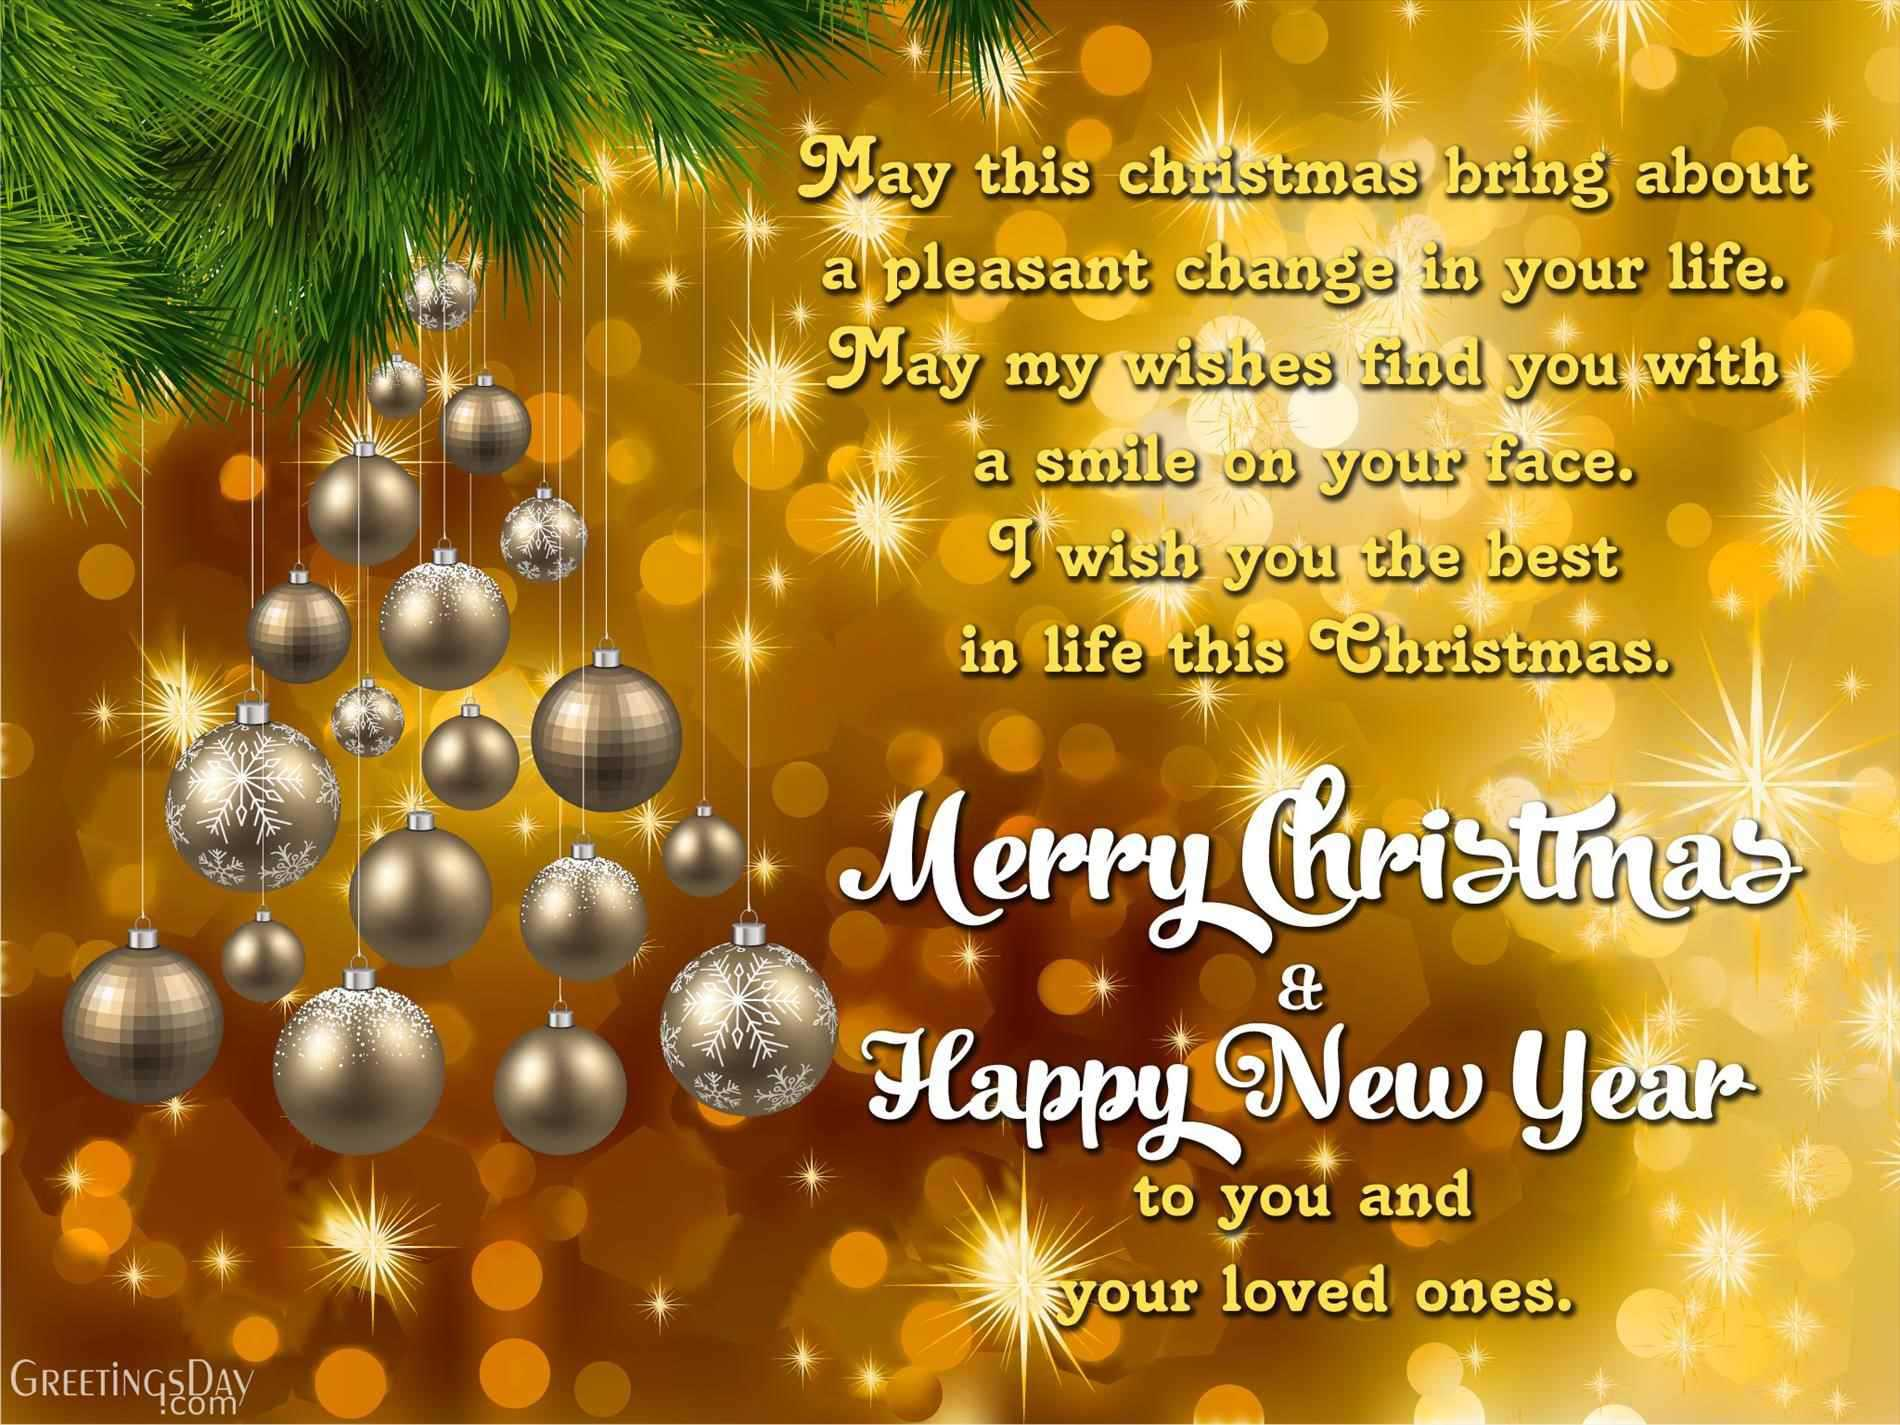 Christmas Greeting Card Pictures Wallpaper